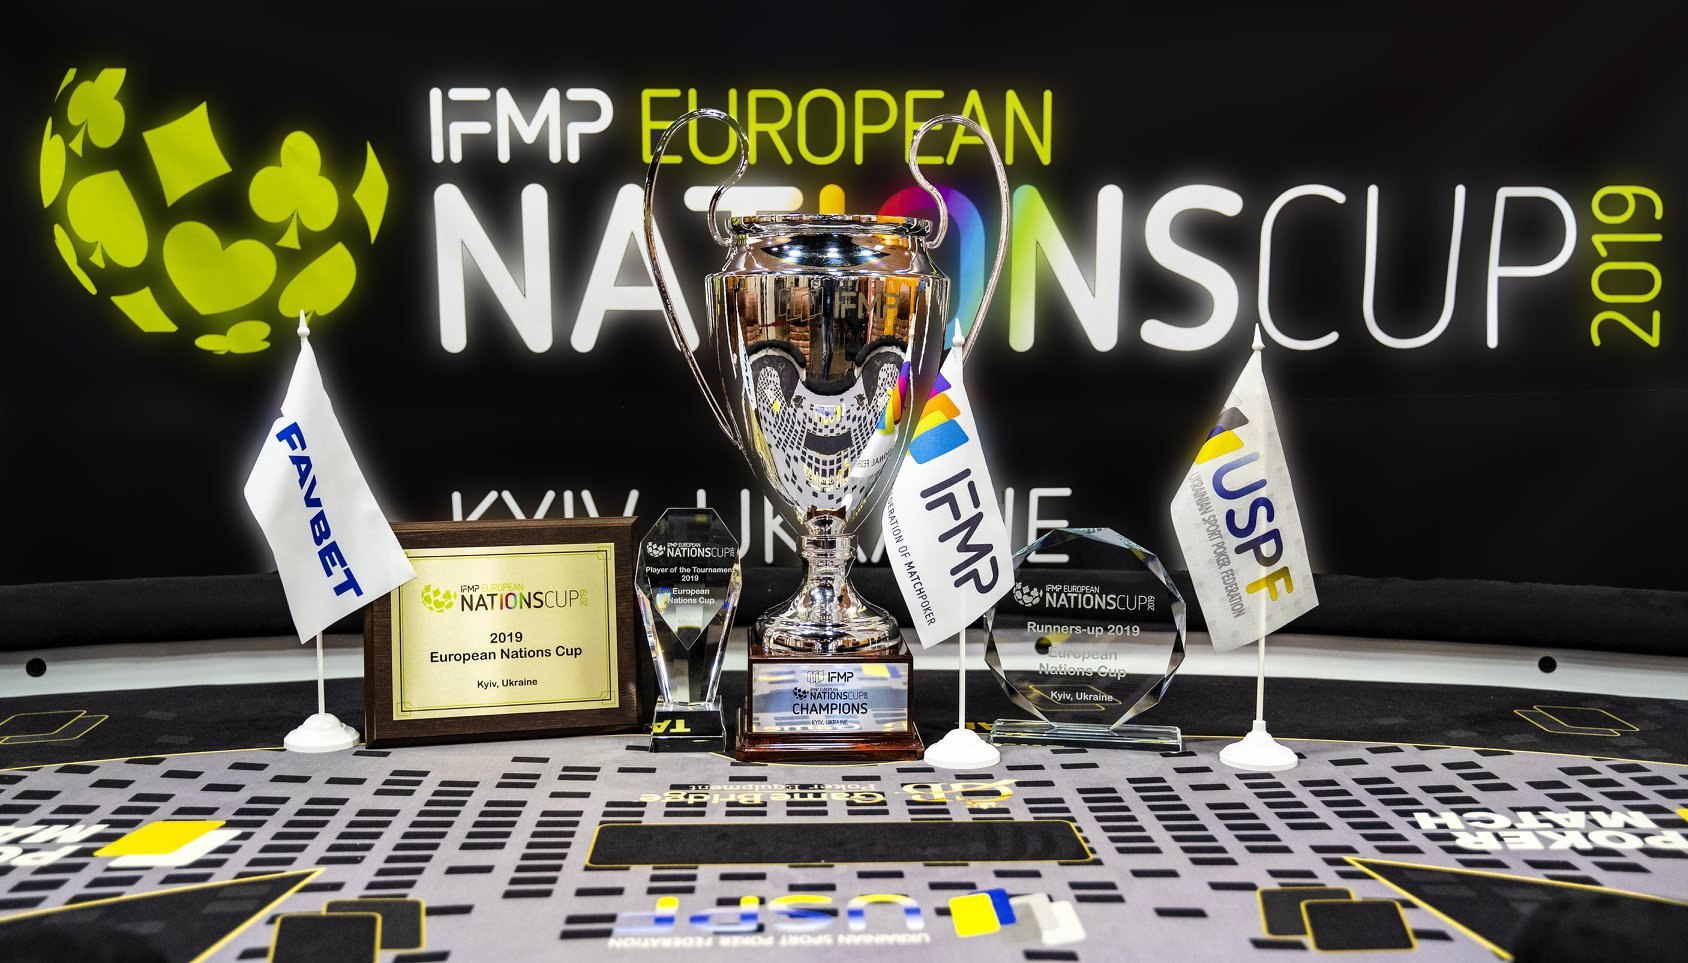 European Nations Cup 2019